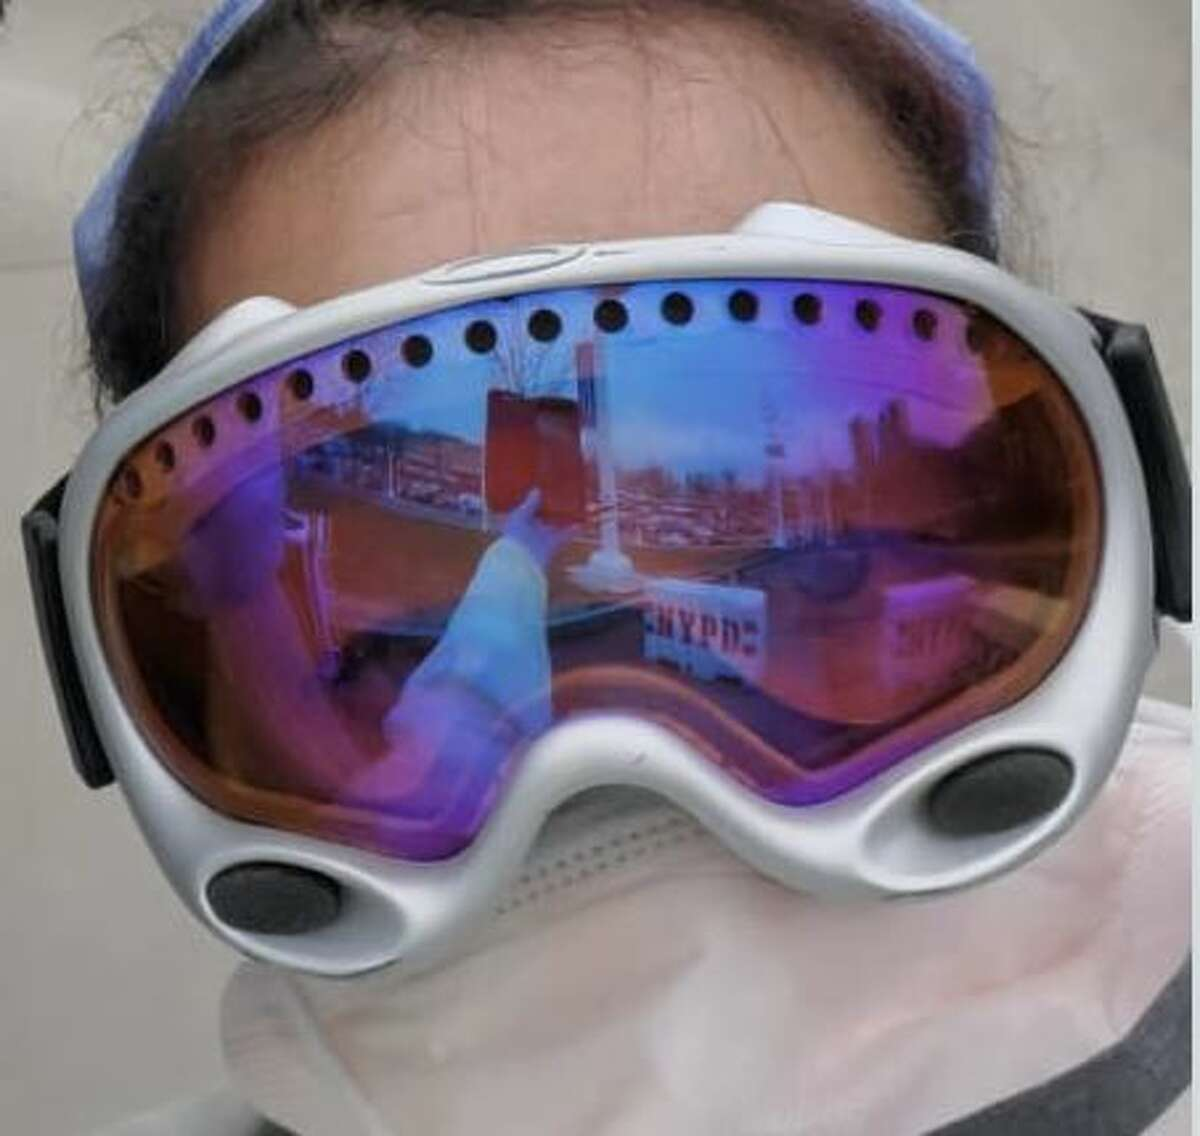 Medical personnel are using donated ski goggles if they can't get medical glasses for protection in treating COVID-19 patients.